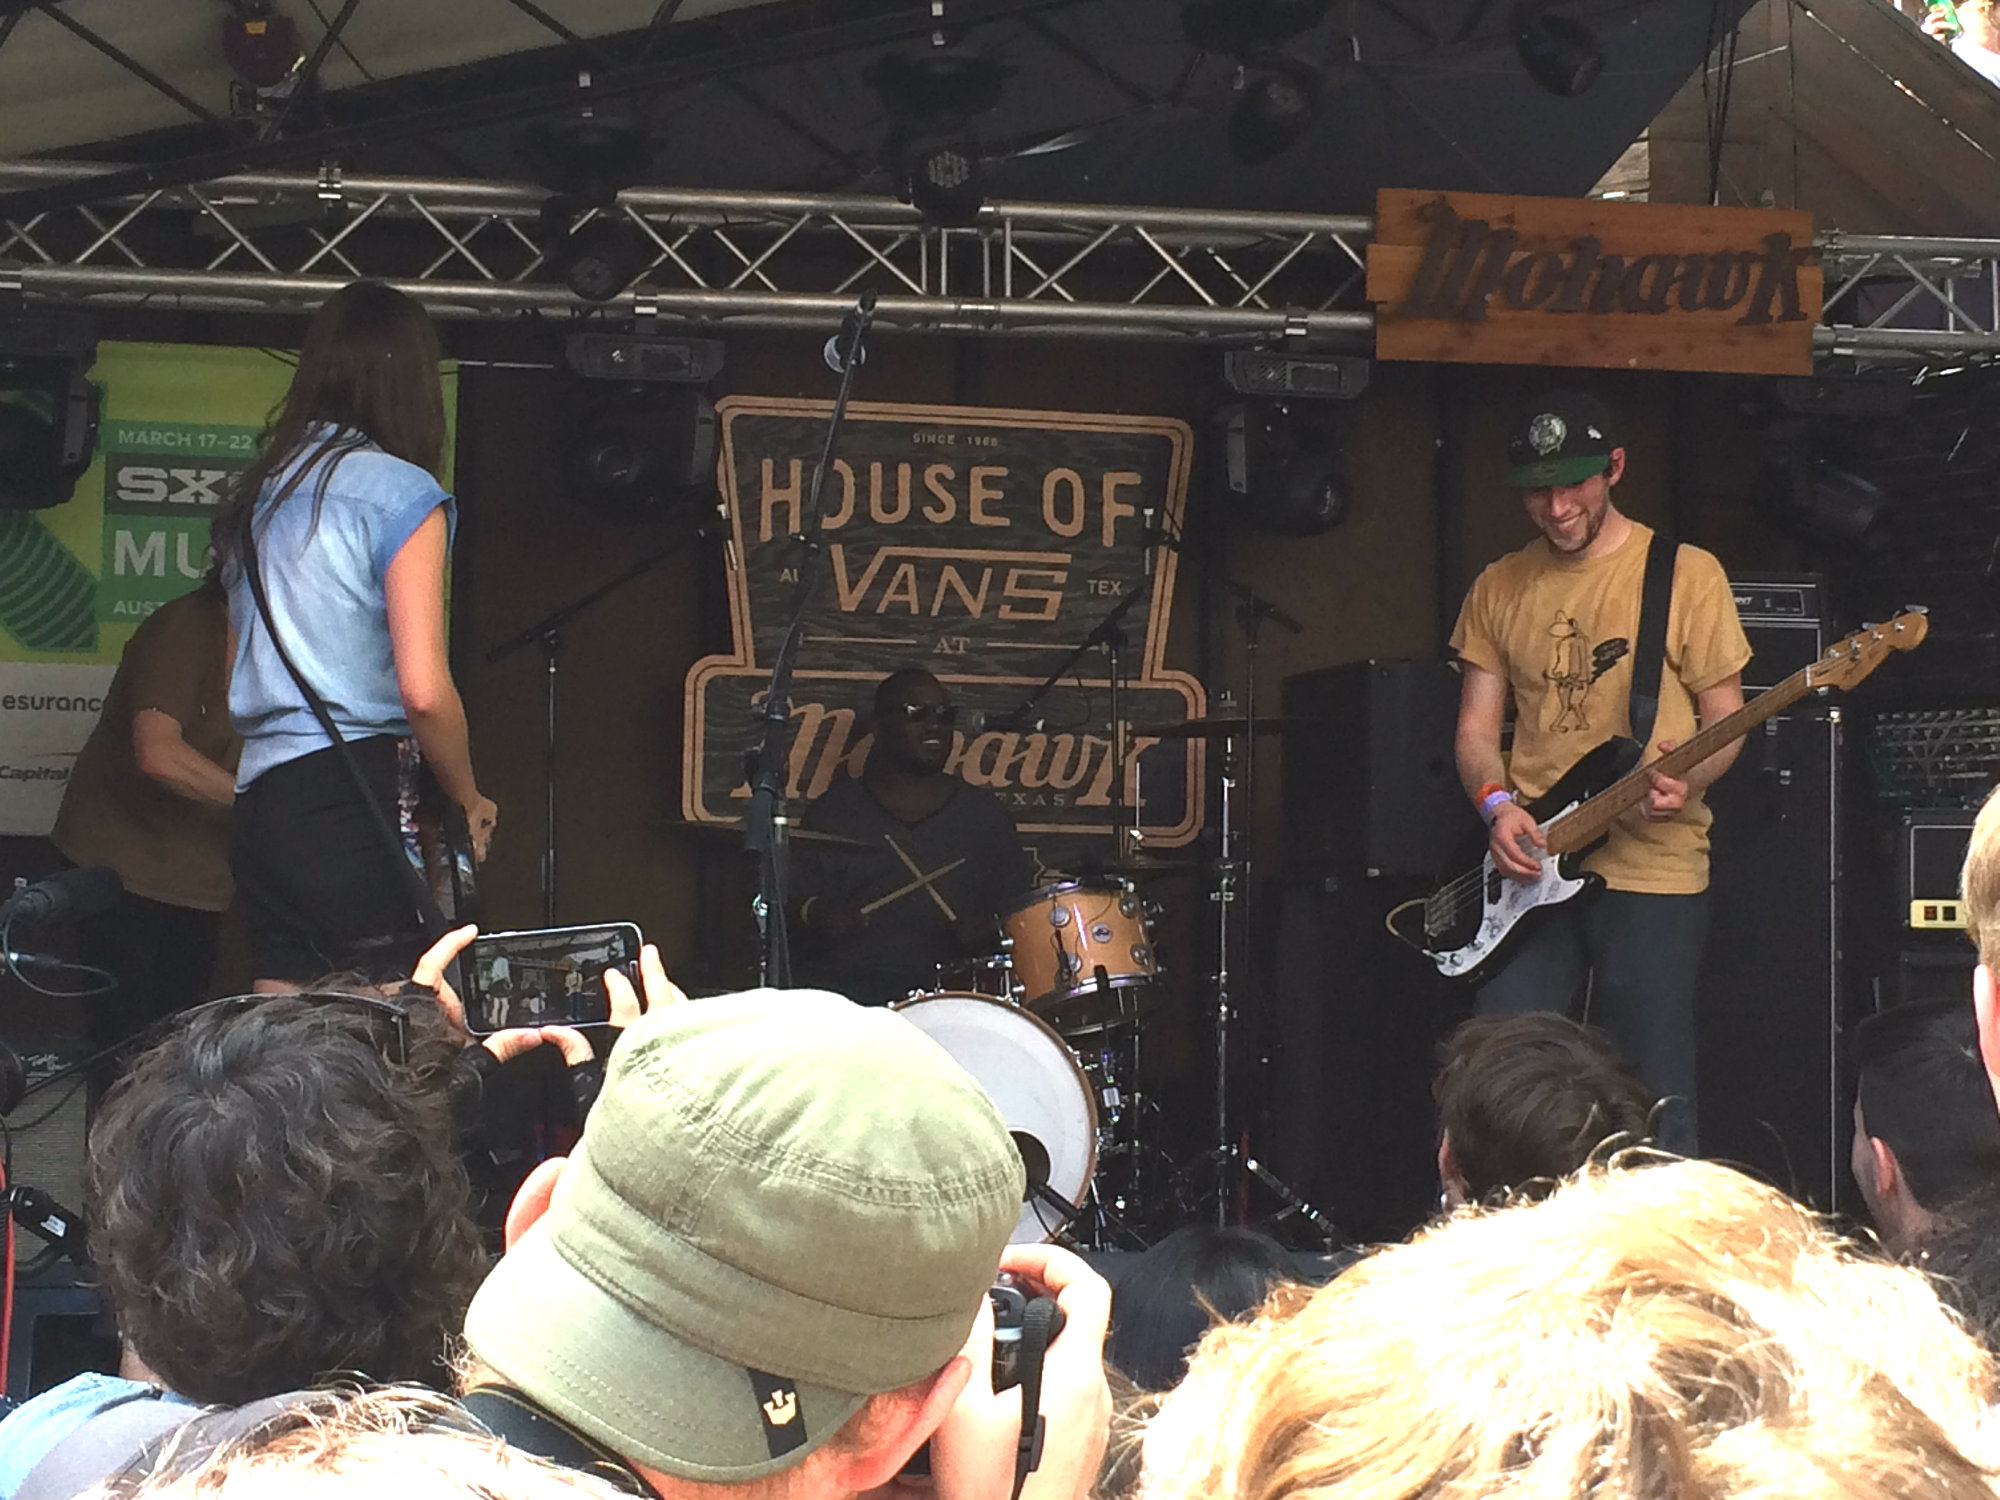 Photo: Speedy Ortiz with Hannibal Buress at SXSW 2015